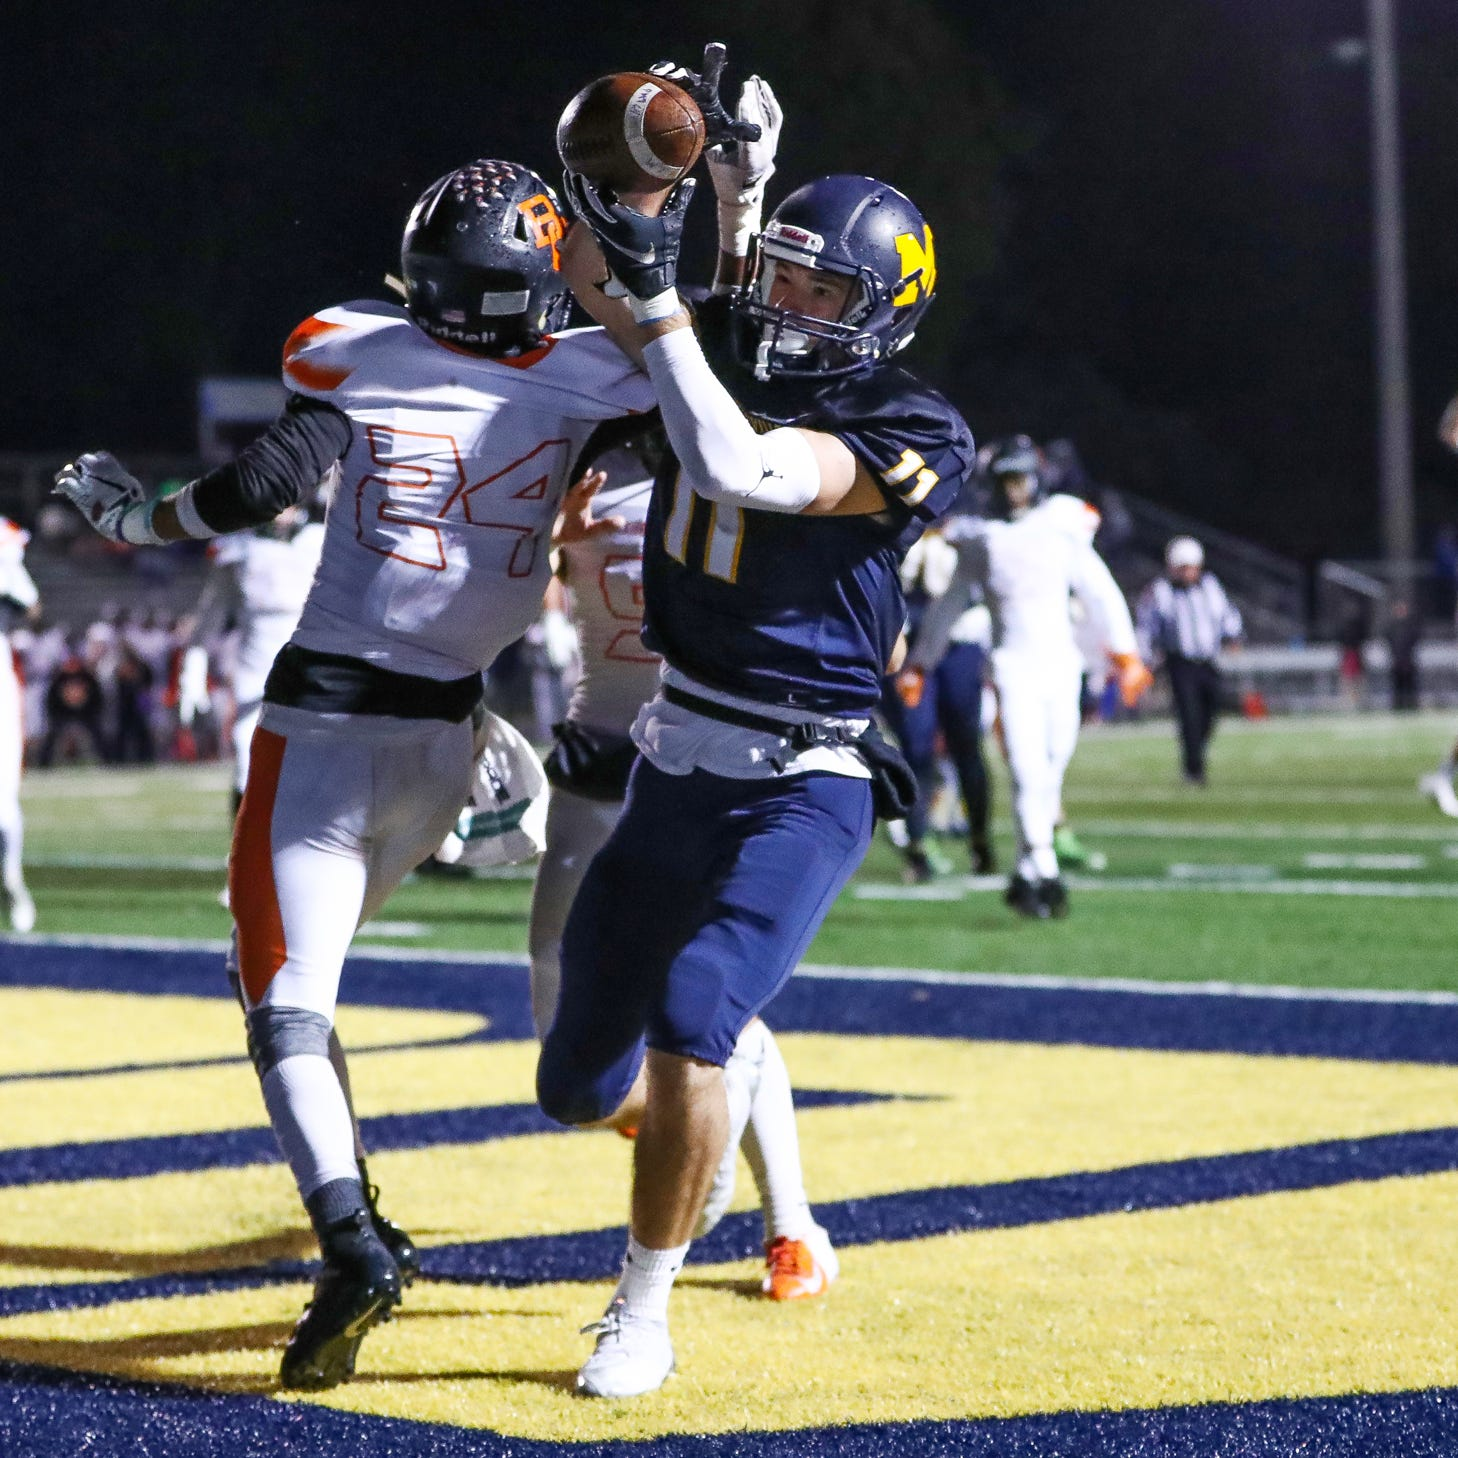 Mooresville Pioneers' Jon Eineman (11) goes up and over Beech Grove Hornets' Donovan Bailey (24) for the touchdown at Mooresville High School on Friday, Oct. 19, 2018.